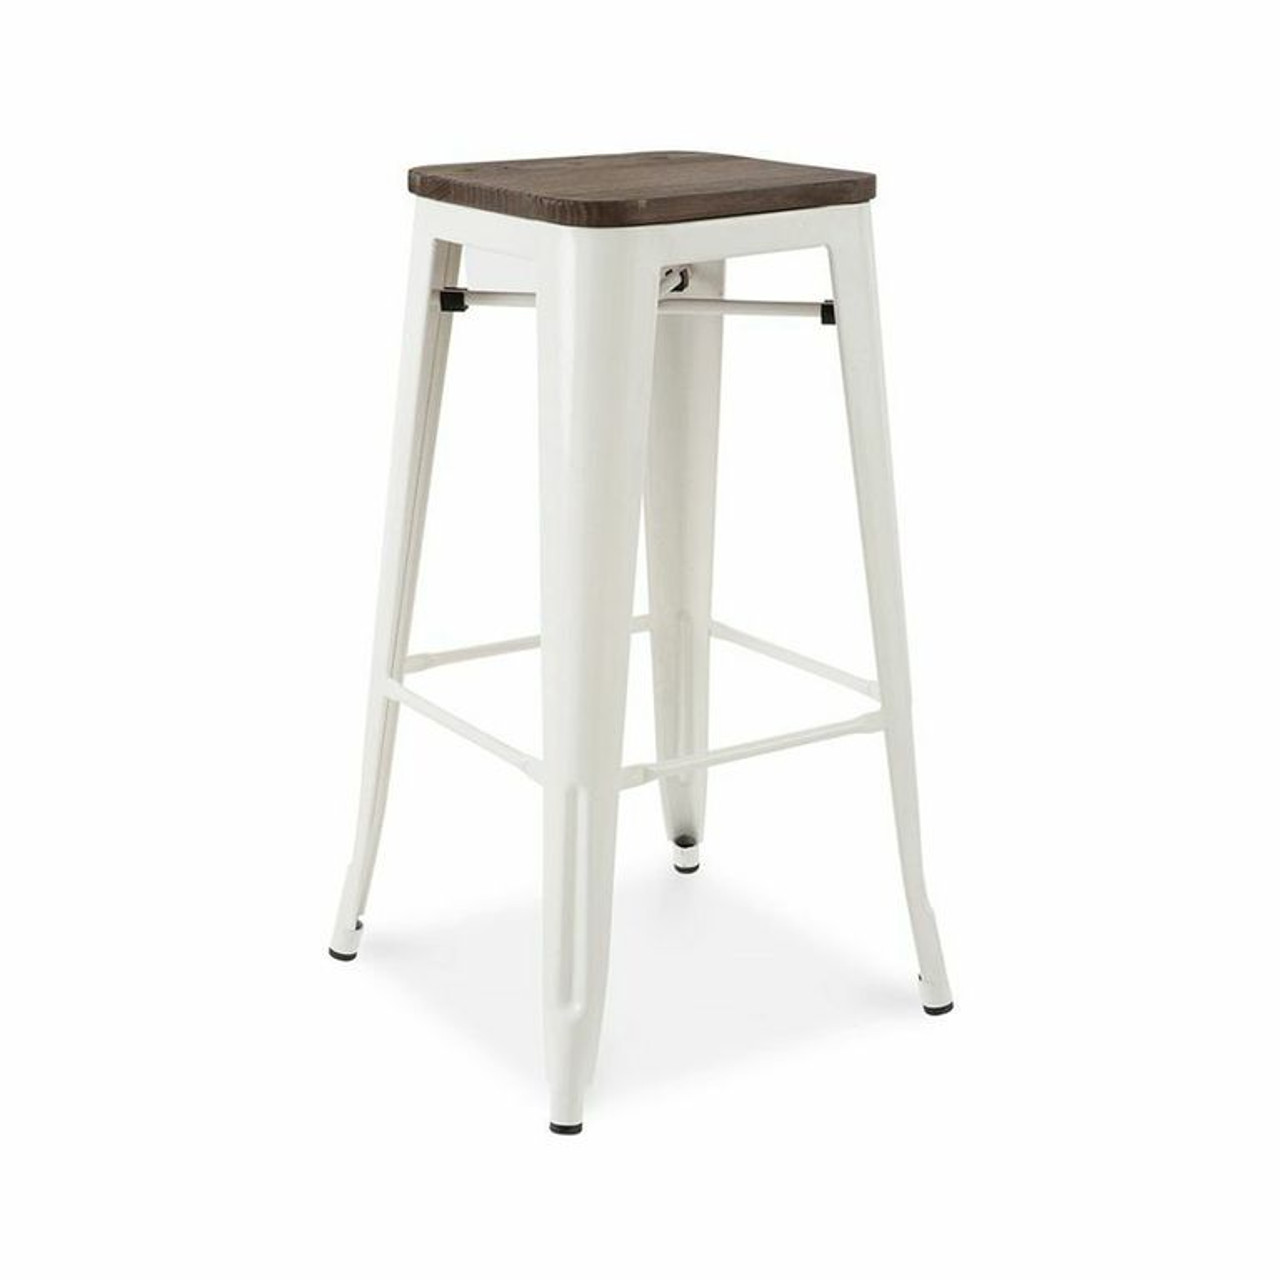 French Industrial Wood And Metal Bar Stools Zin Home